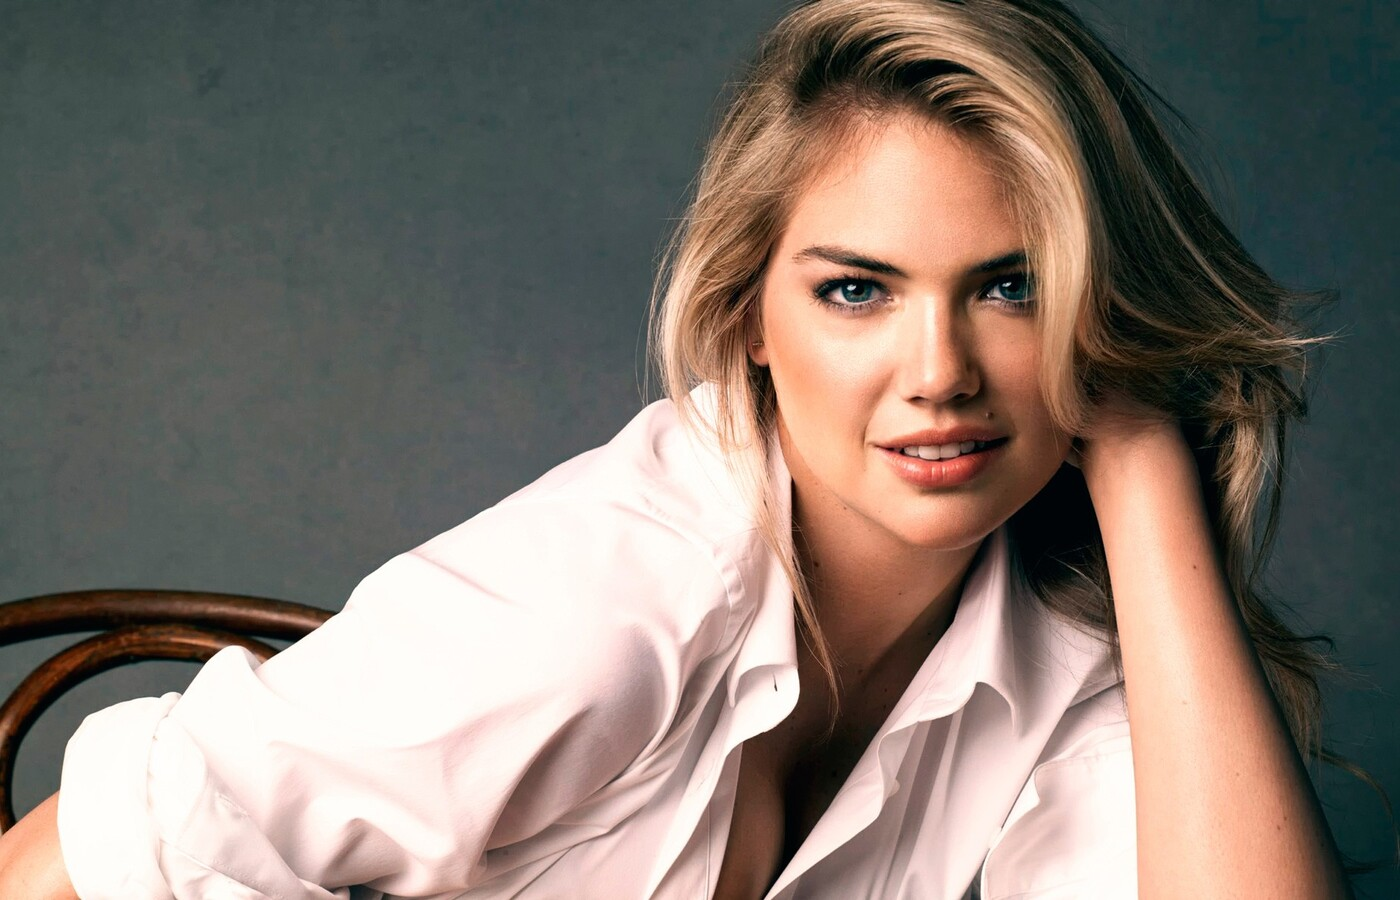 Kate Upton Hd Wallpaper This Wallpapers